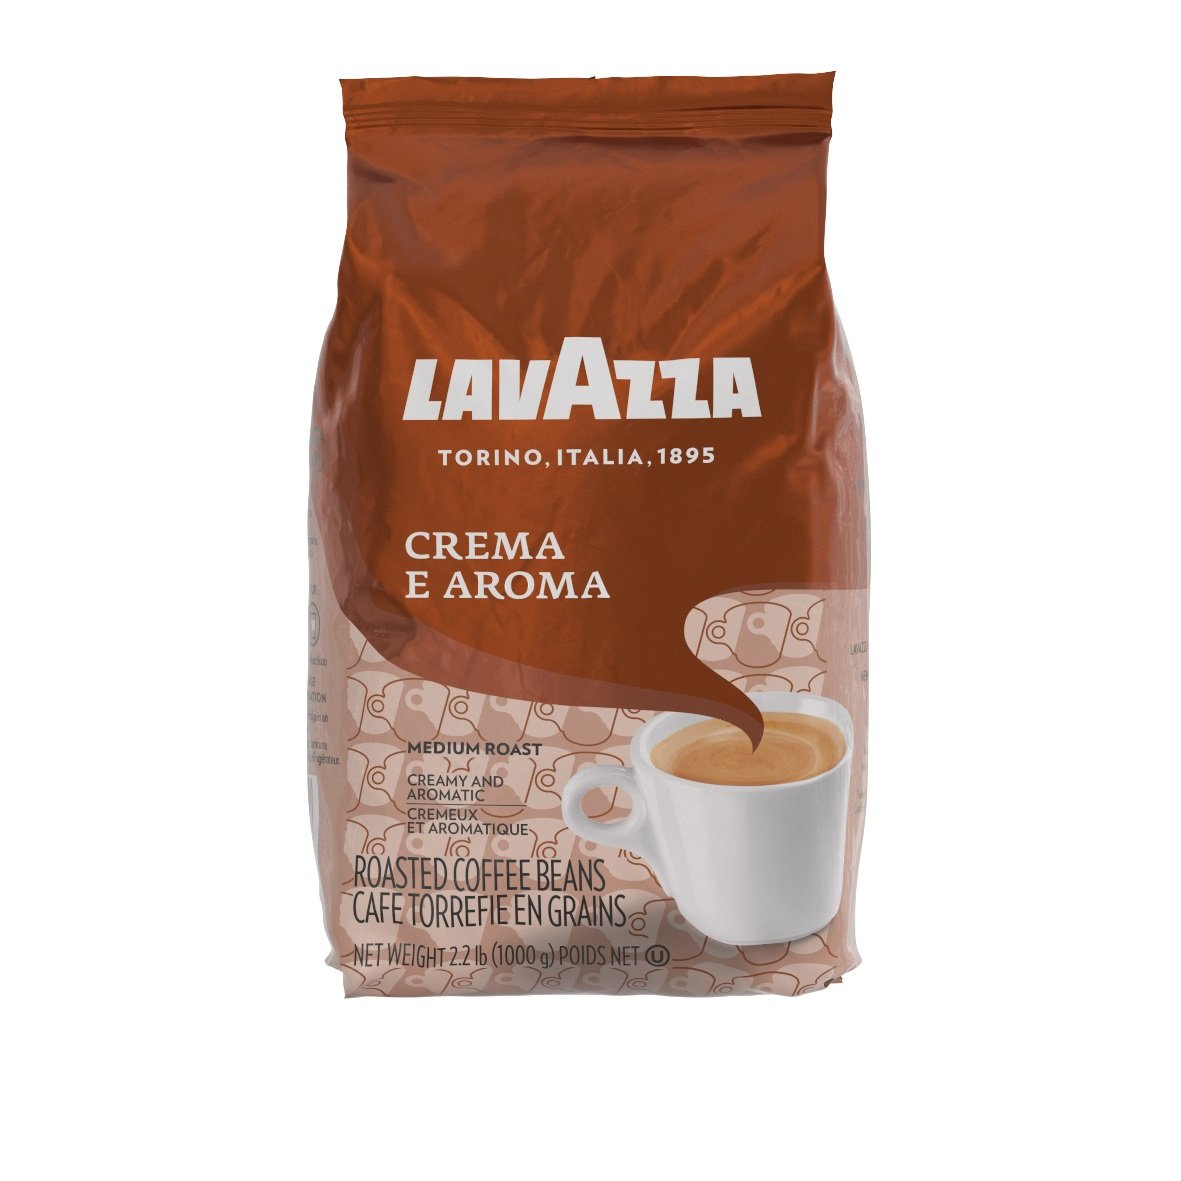 Lavazza Crema e Aroma Whole Bean Coffee Blend, Medium Roast, 2.2-Pound Bag